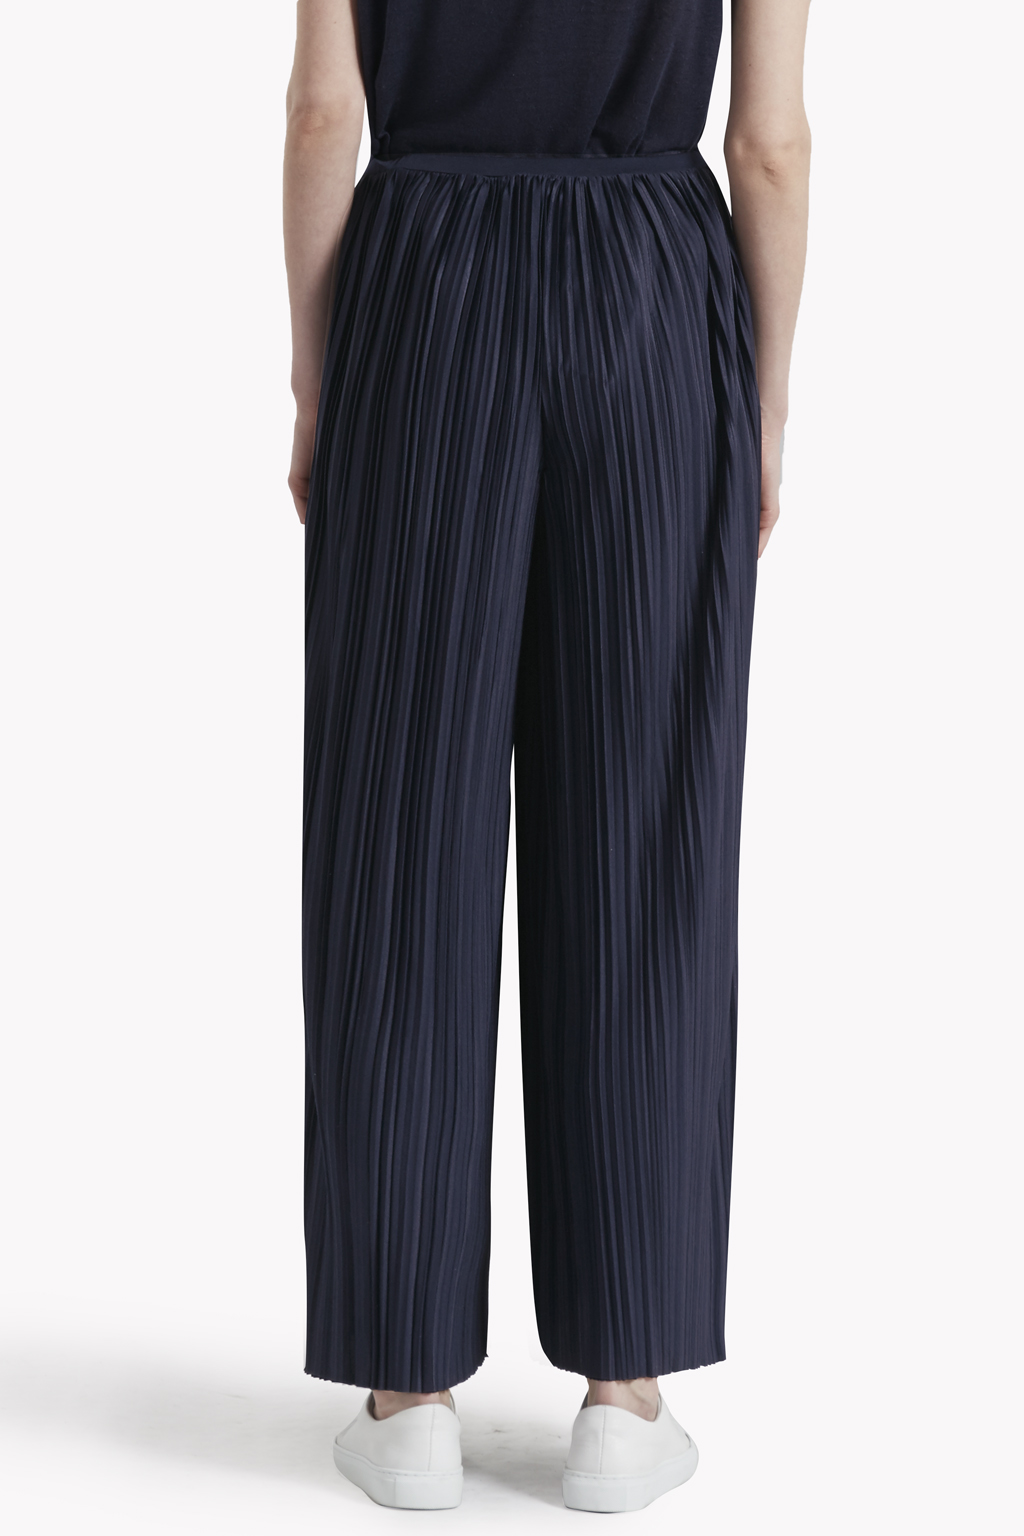 Manchester Great Sale Cheap Price Womens Narcissus Jersey Flared Culottes Trousers Great Plains Discount Cost Outlet Cheapest Cheap Sale Pictures l4HQfhs